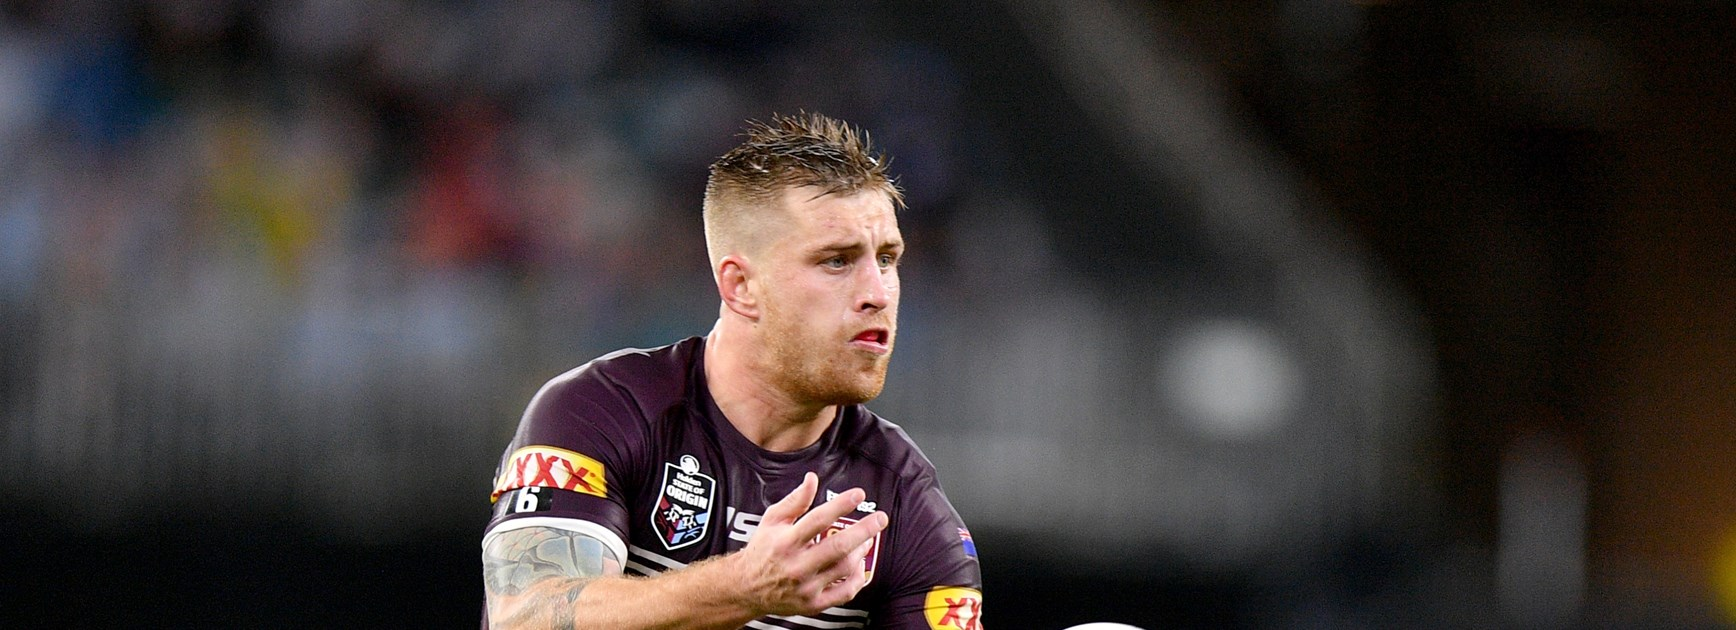 Several new faces in Maroons 2020 squad